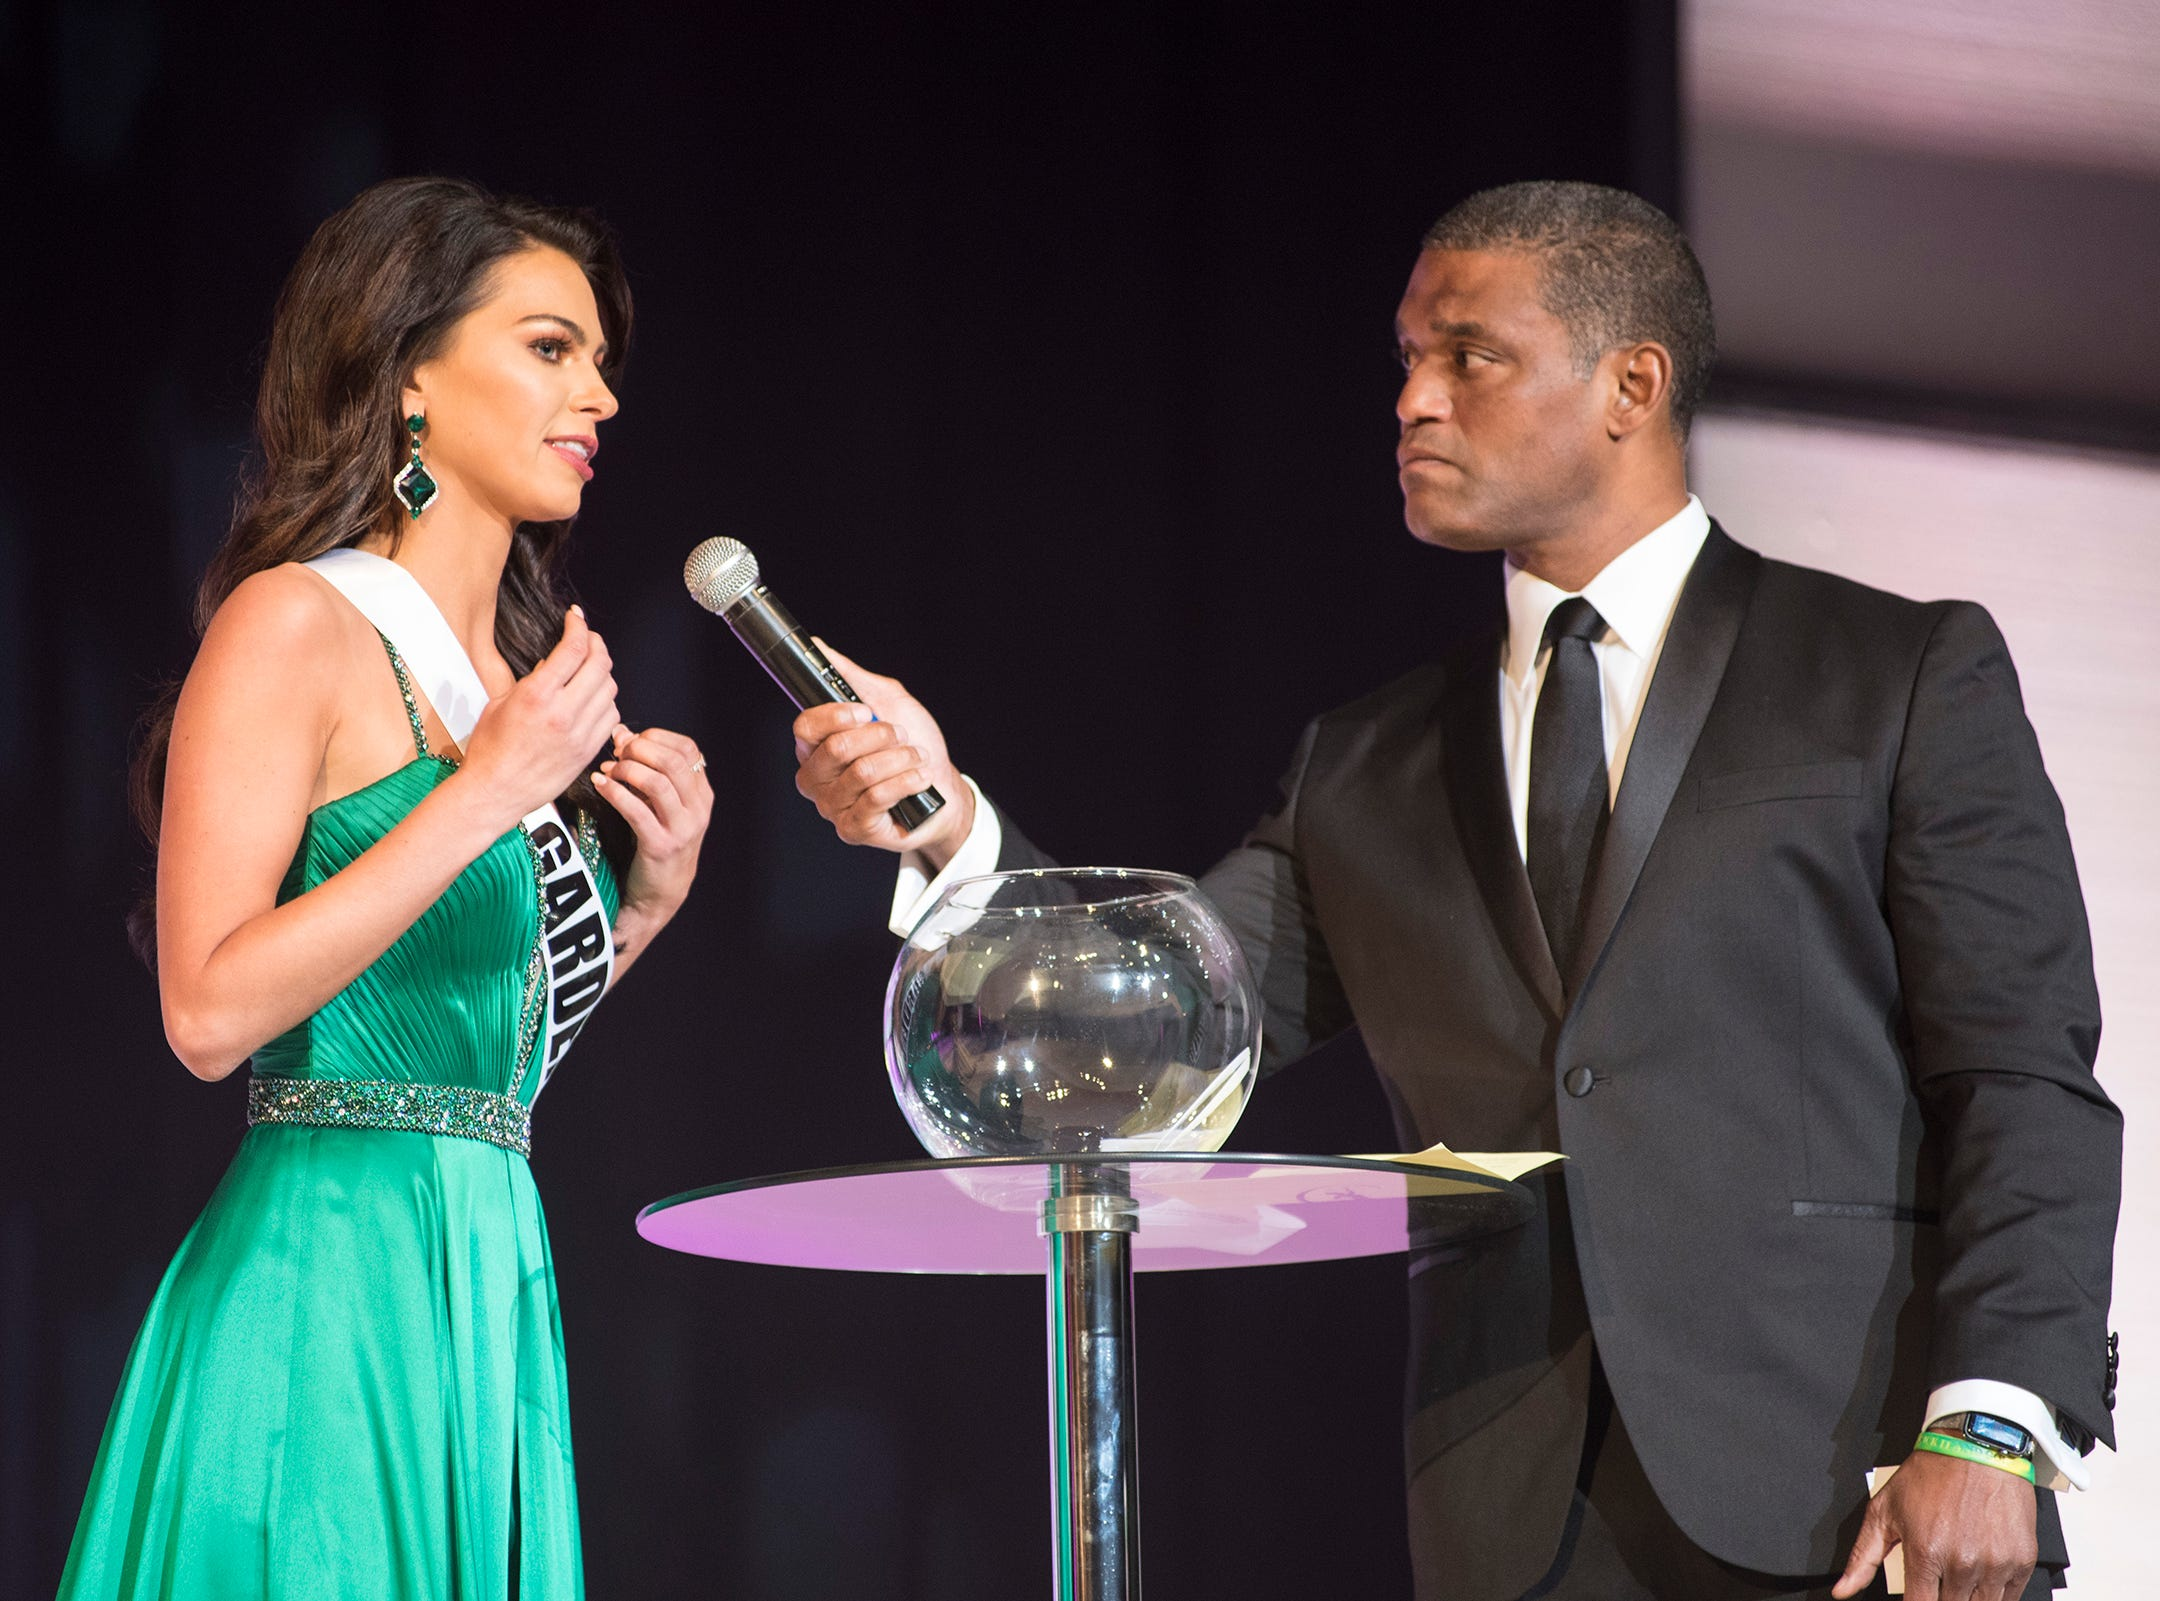 Miss Garden City Alyse Madej, left, is questioned by Cincinnati TV personality Rob Williams Saturday, Sept. 22, 2018 during the final round of the Miss Michigan USA pageant at McMorran Theater.